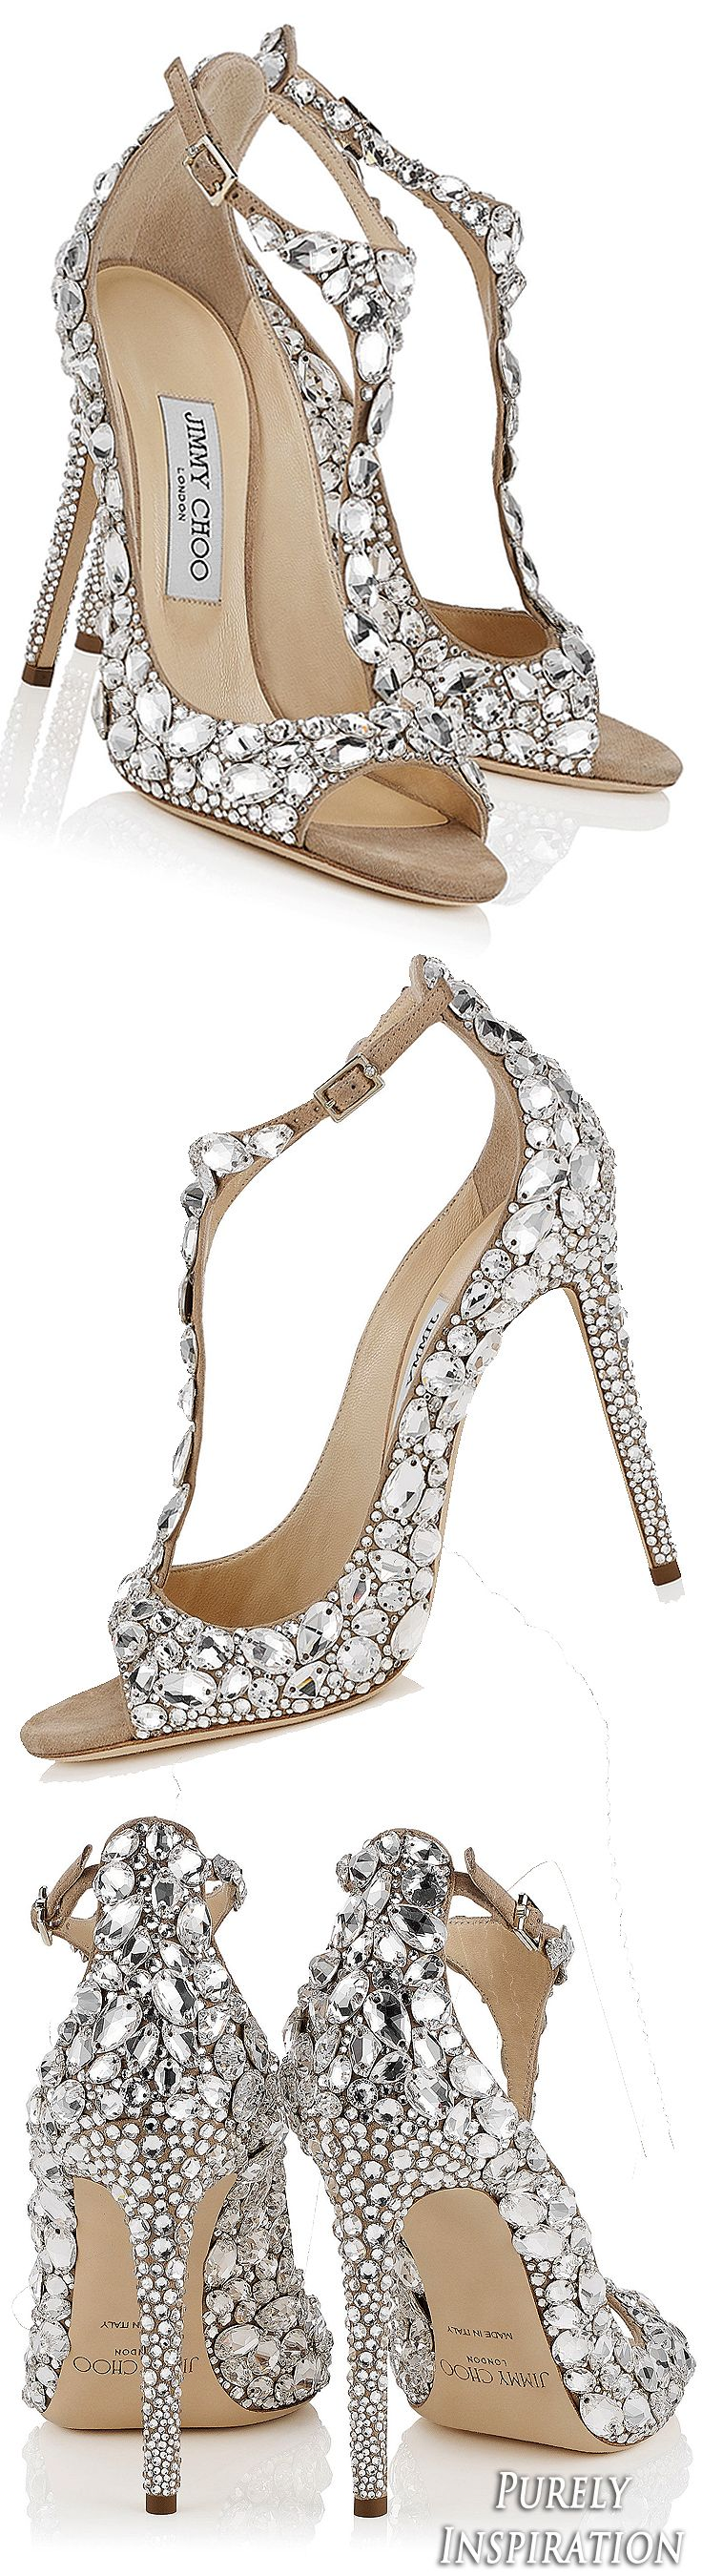 Jimmychoo 69 On In 2018 Shoes To Dye For Shoes Wedding Shoes Heels